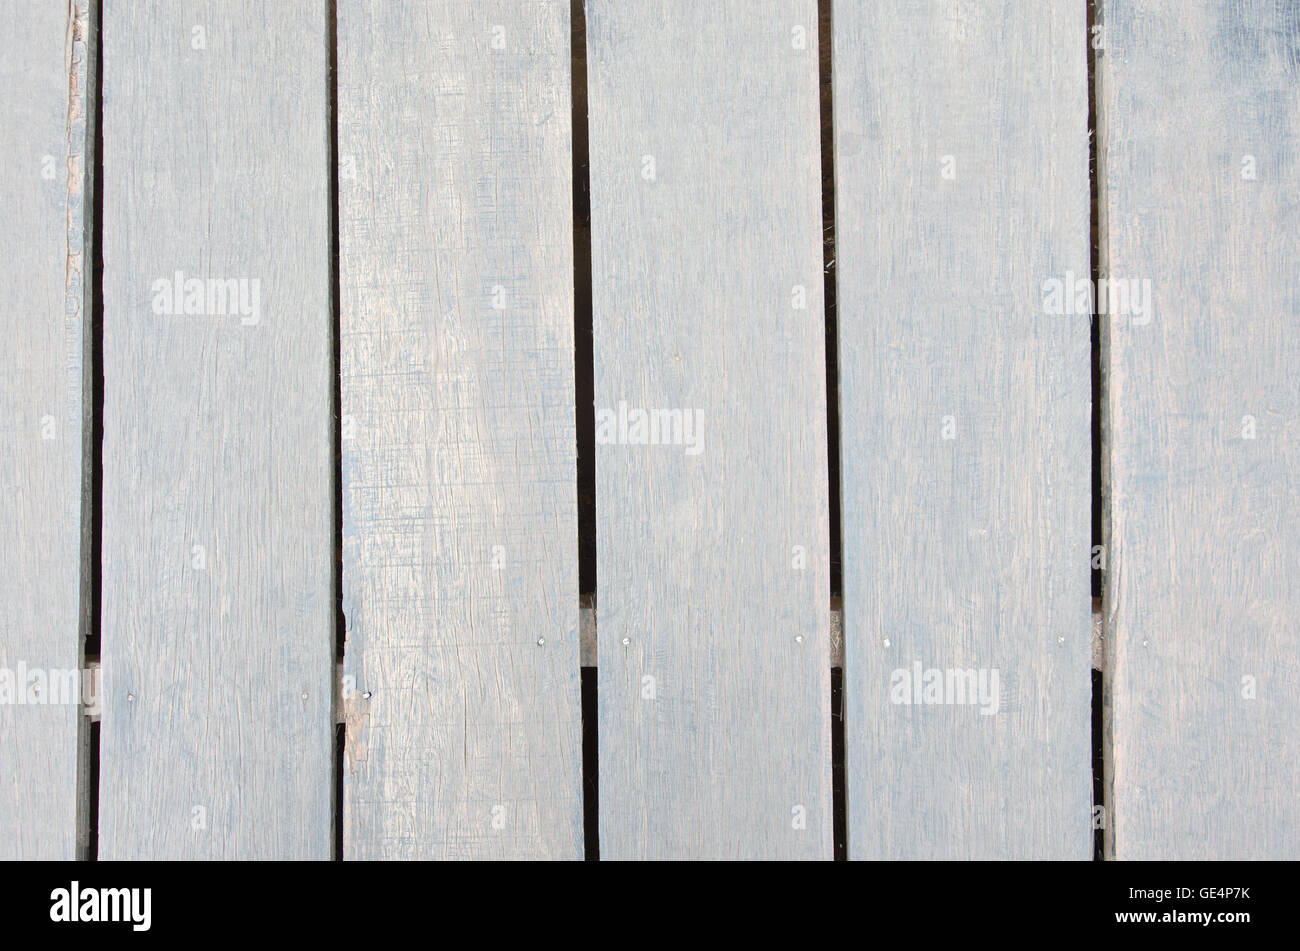 Wooden board background for graphic resource usage - Stock Image